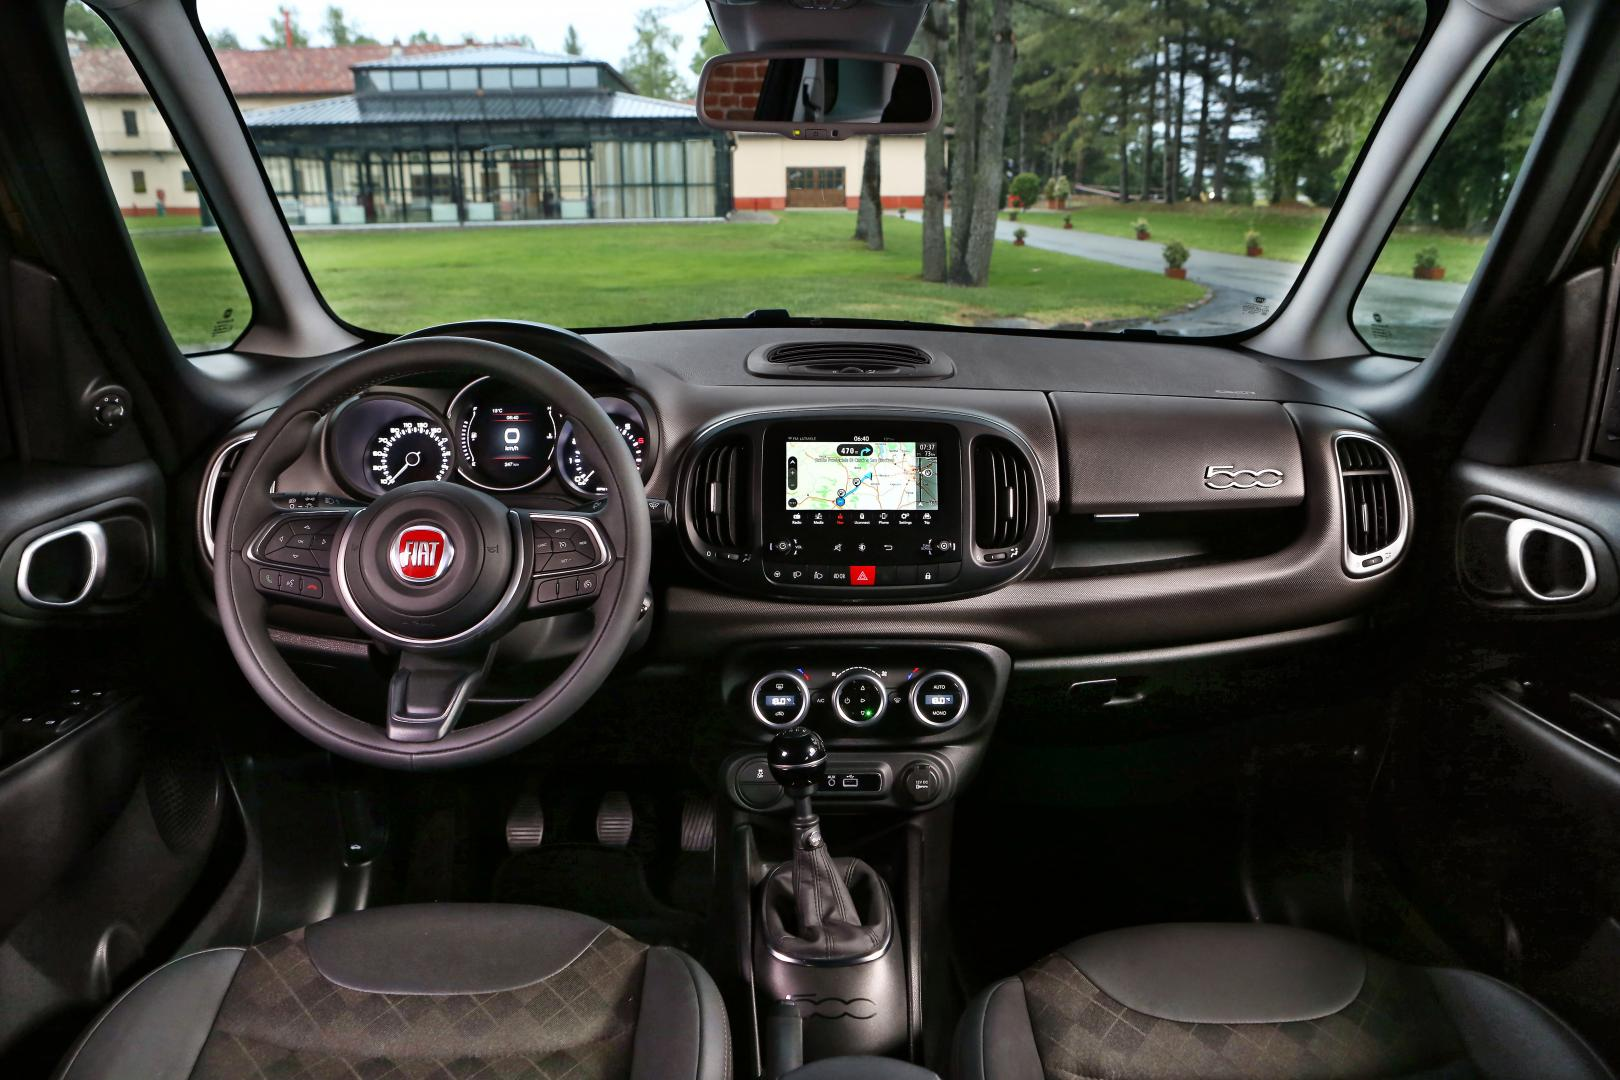 fiat 500l 1 4 t jet autotest en specificaties topgear nederland. Black Bedroom Furniture Sets. Home Design Ideas